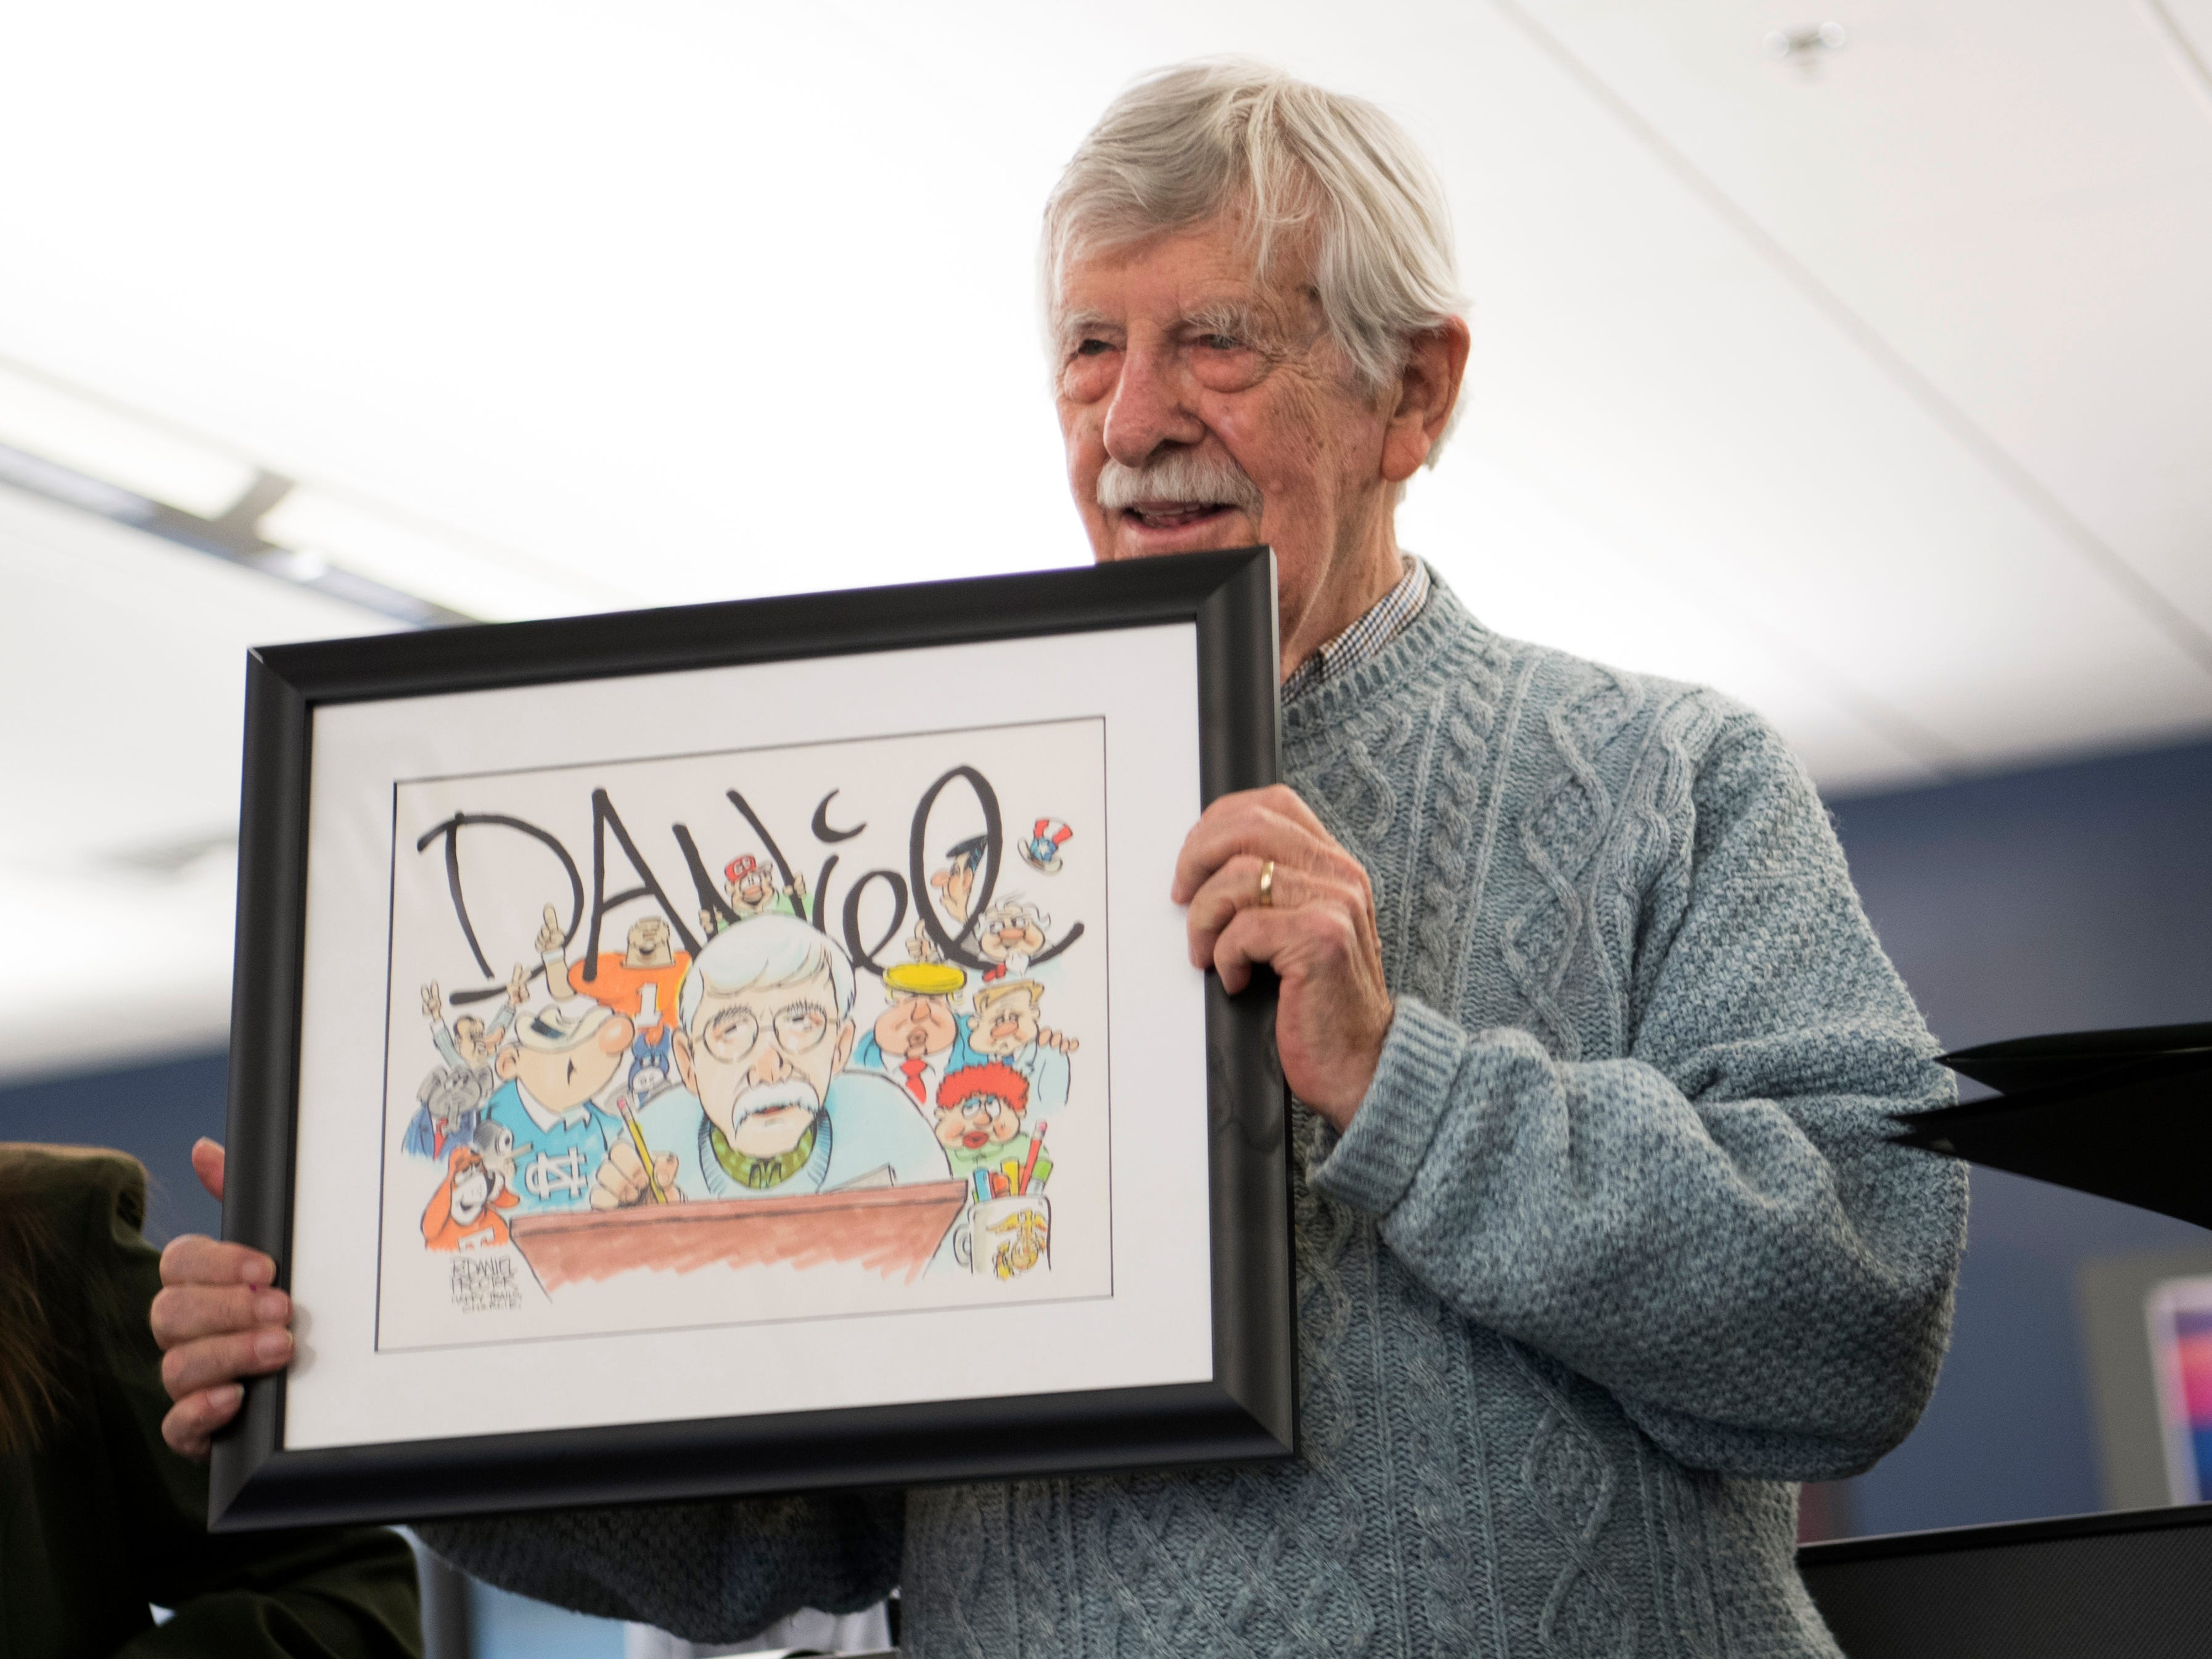 News Sentinel cartoonist Charlie Daniel during a celebration of the retirements of executive editor Jack McElroy and cartoonist Charlie Daniel in the News Sentinel newsroom on Friday, February 1, 2019.